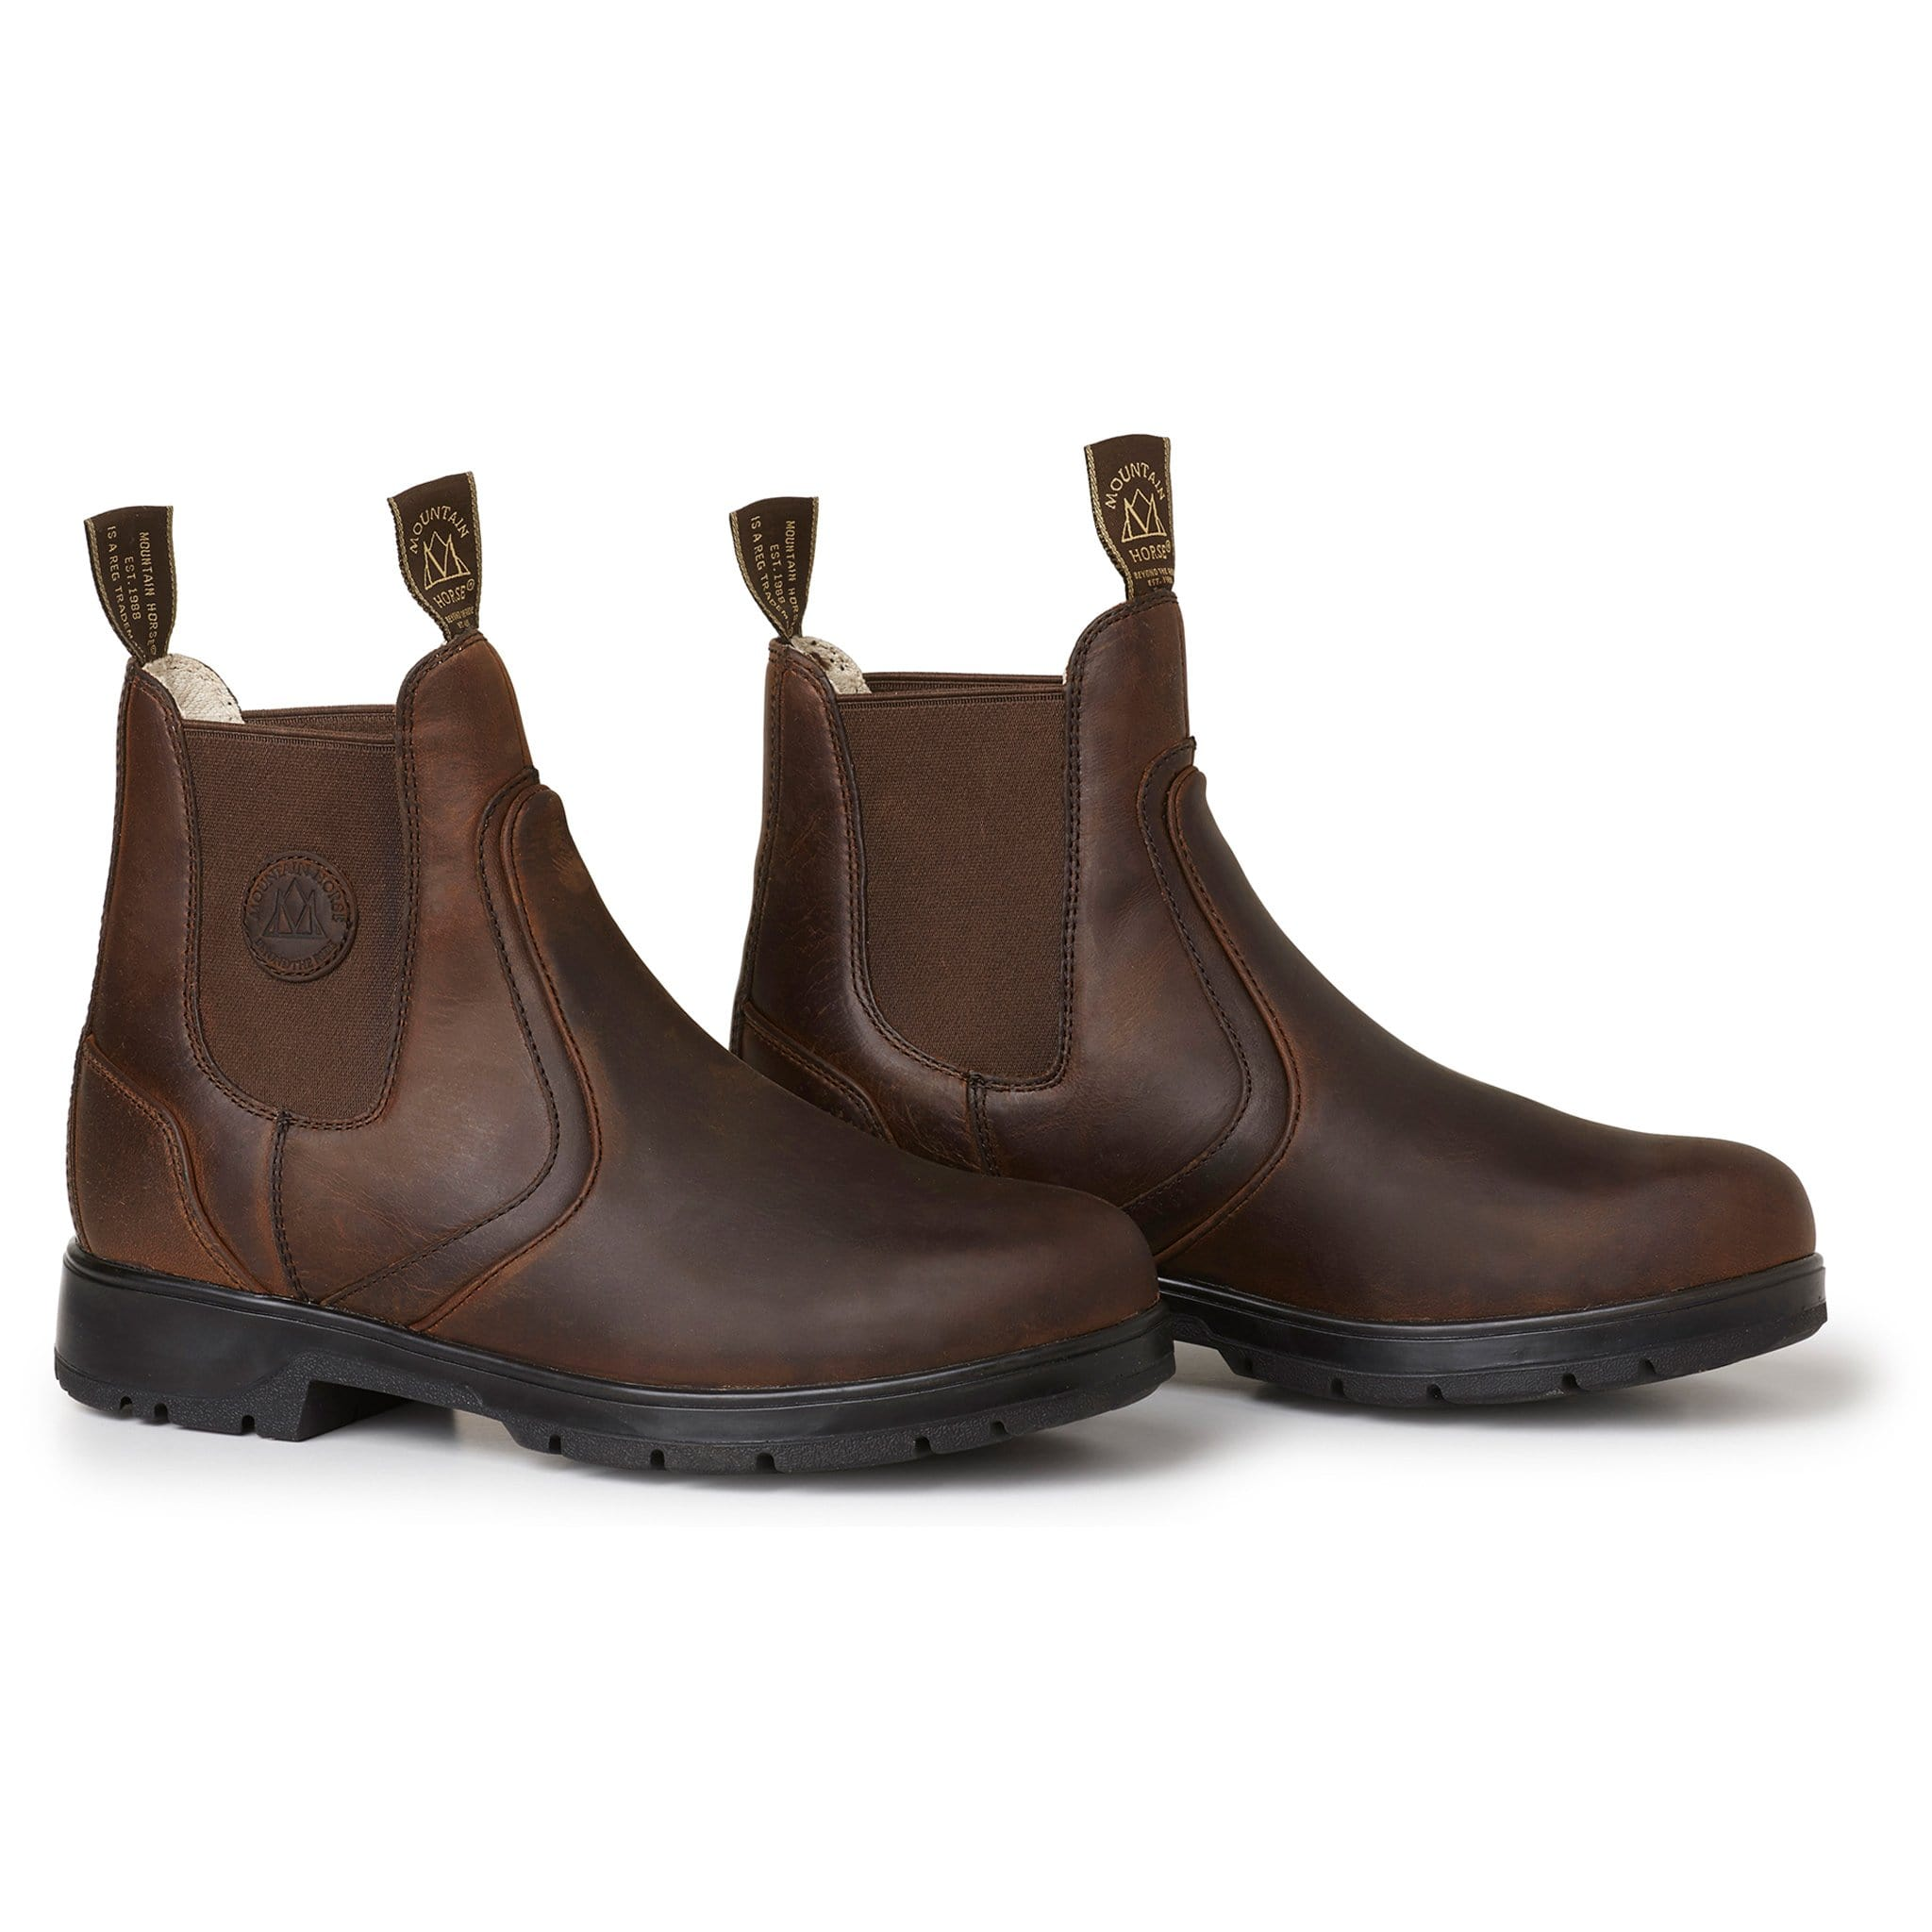 Mountain Horse Spring River Jodhpur Boot Brown 01049